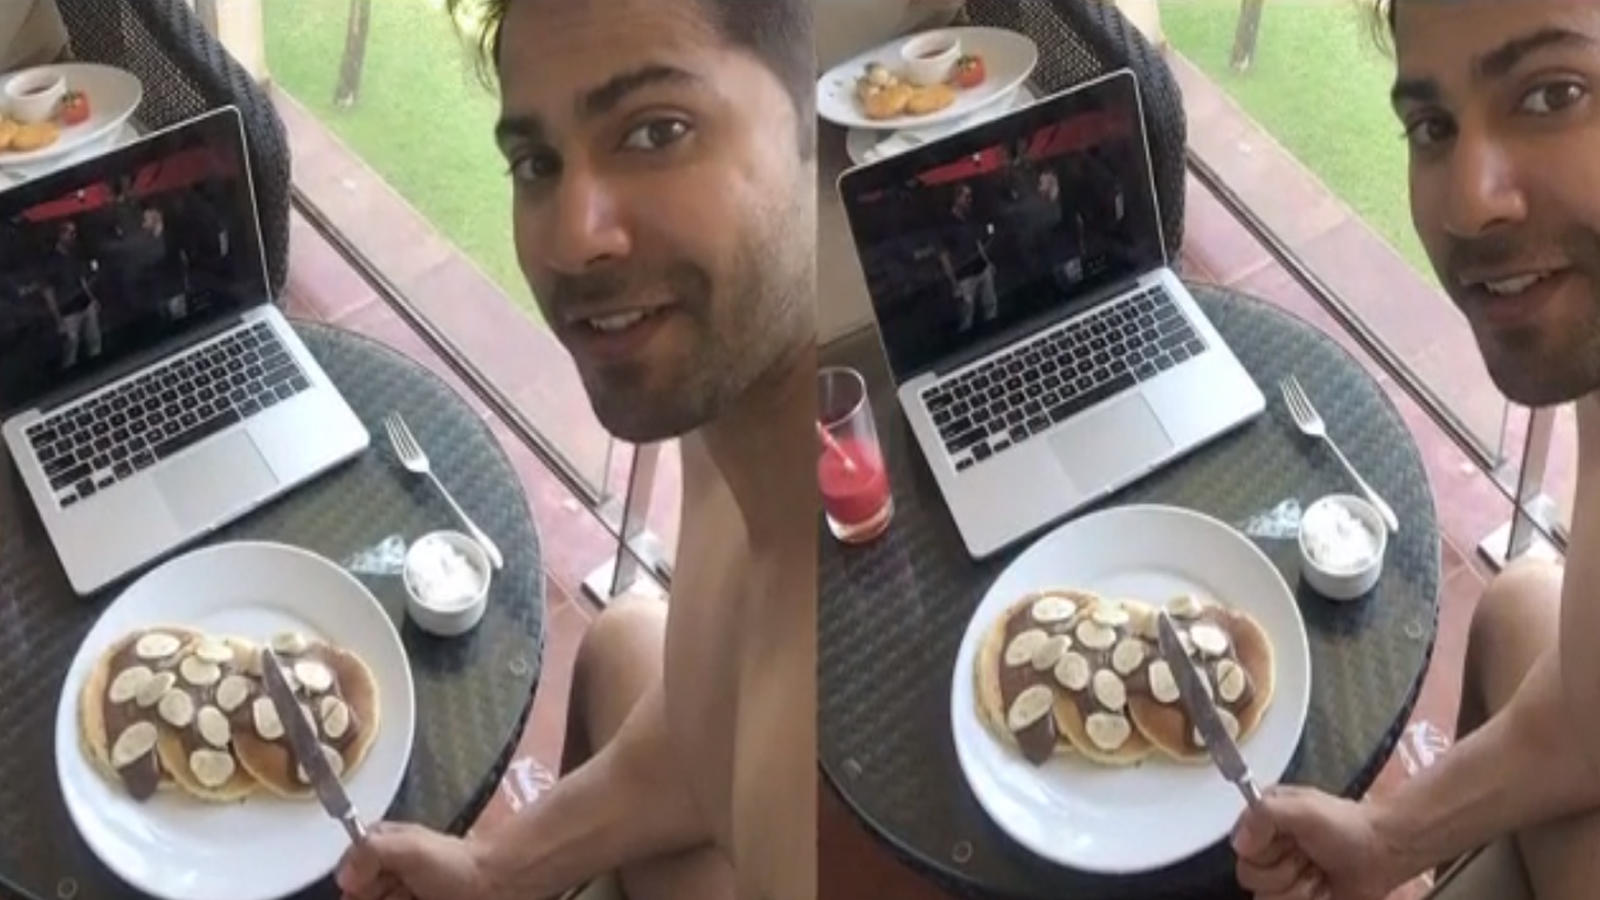 varun-dhawan-celebrates-coolie-no-1-wrap-with-pancakes-shares-pictures